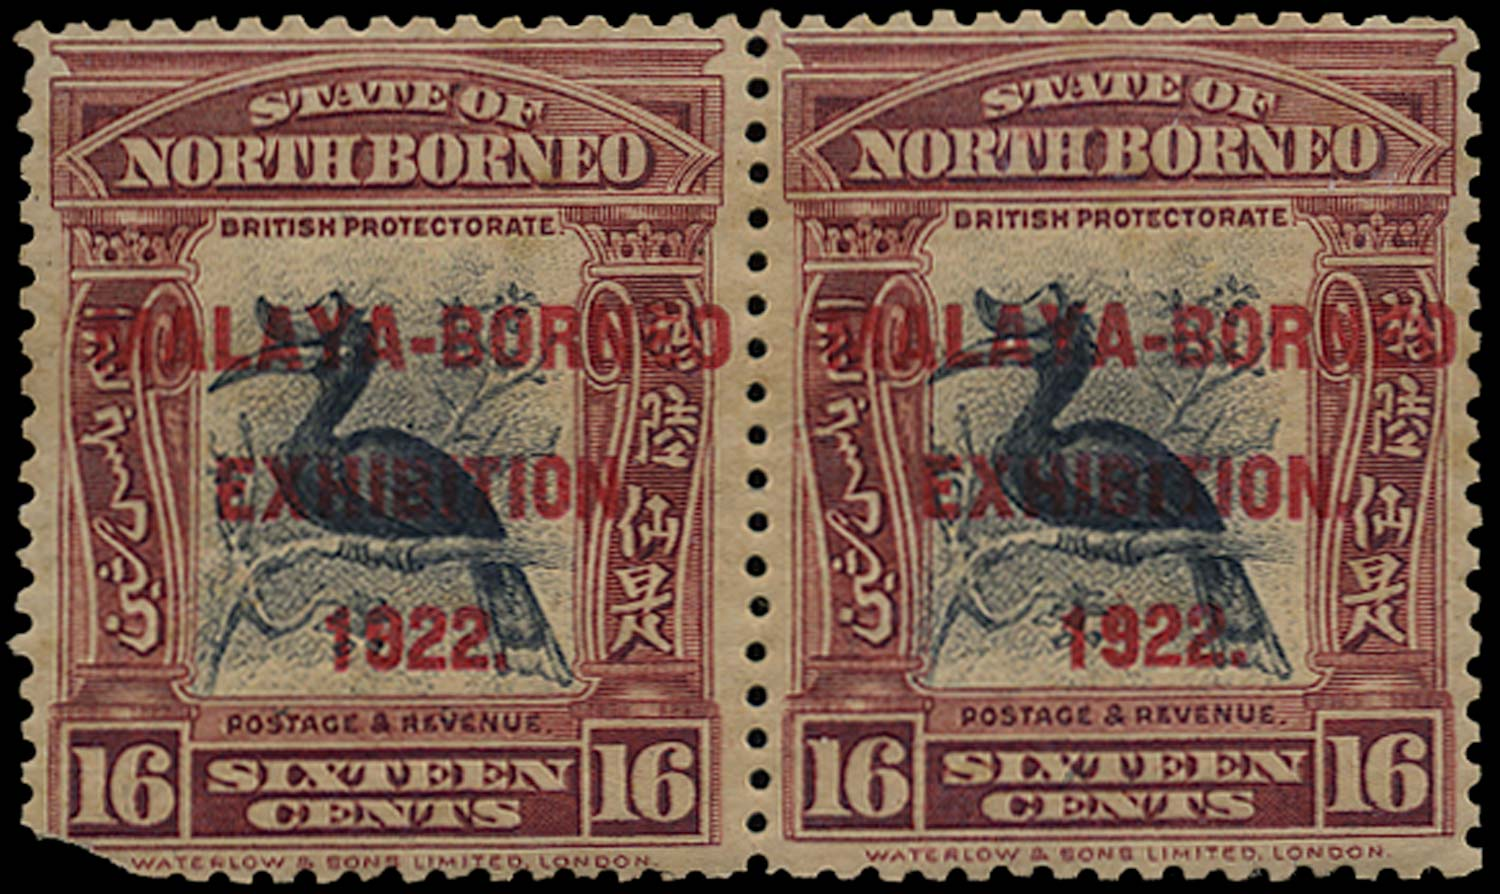 NORTH BORNEO 1922  SG267b/(ba) Mint